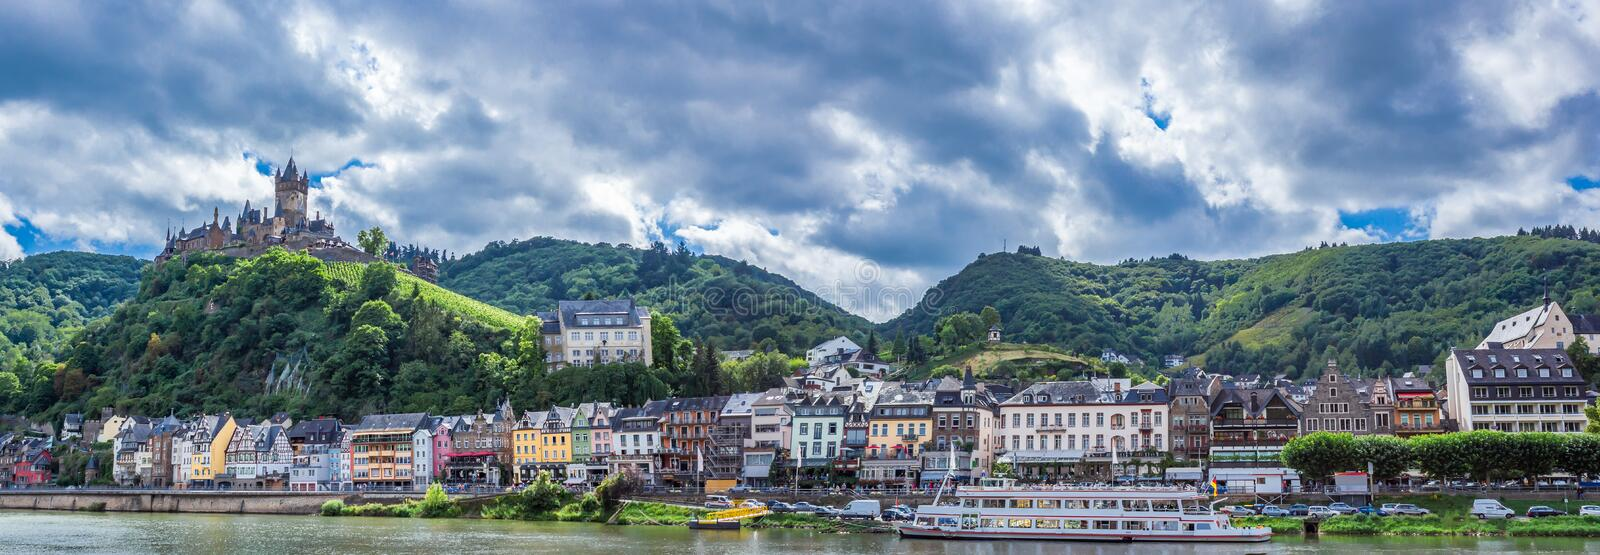 Cochem Imperial Castle on Hillside at the Moselle Riverbank royalty free stock image